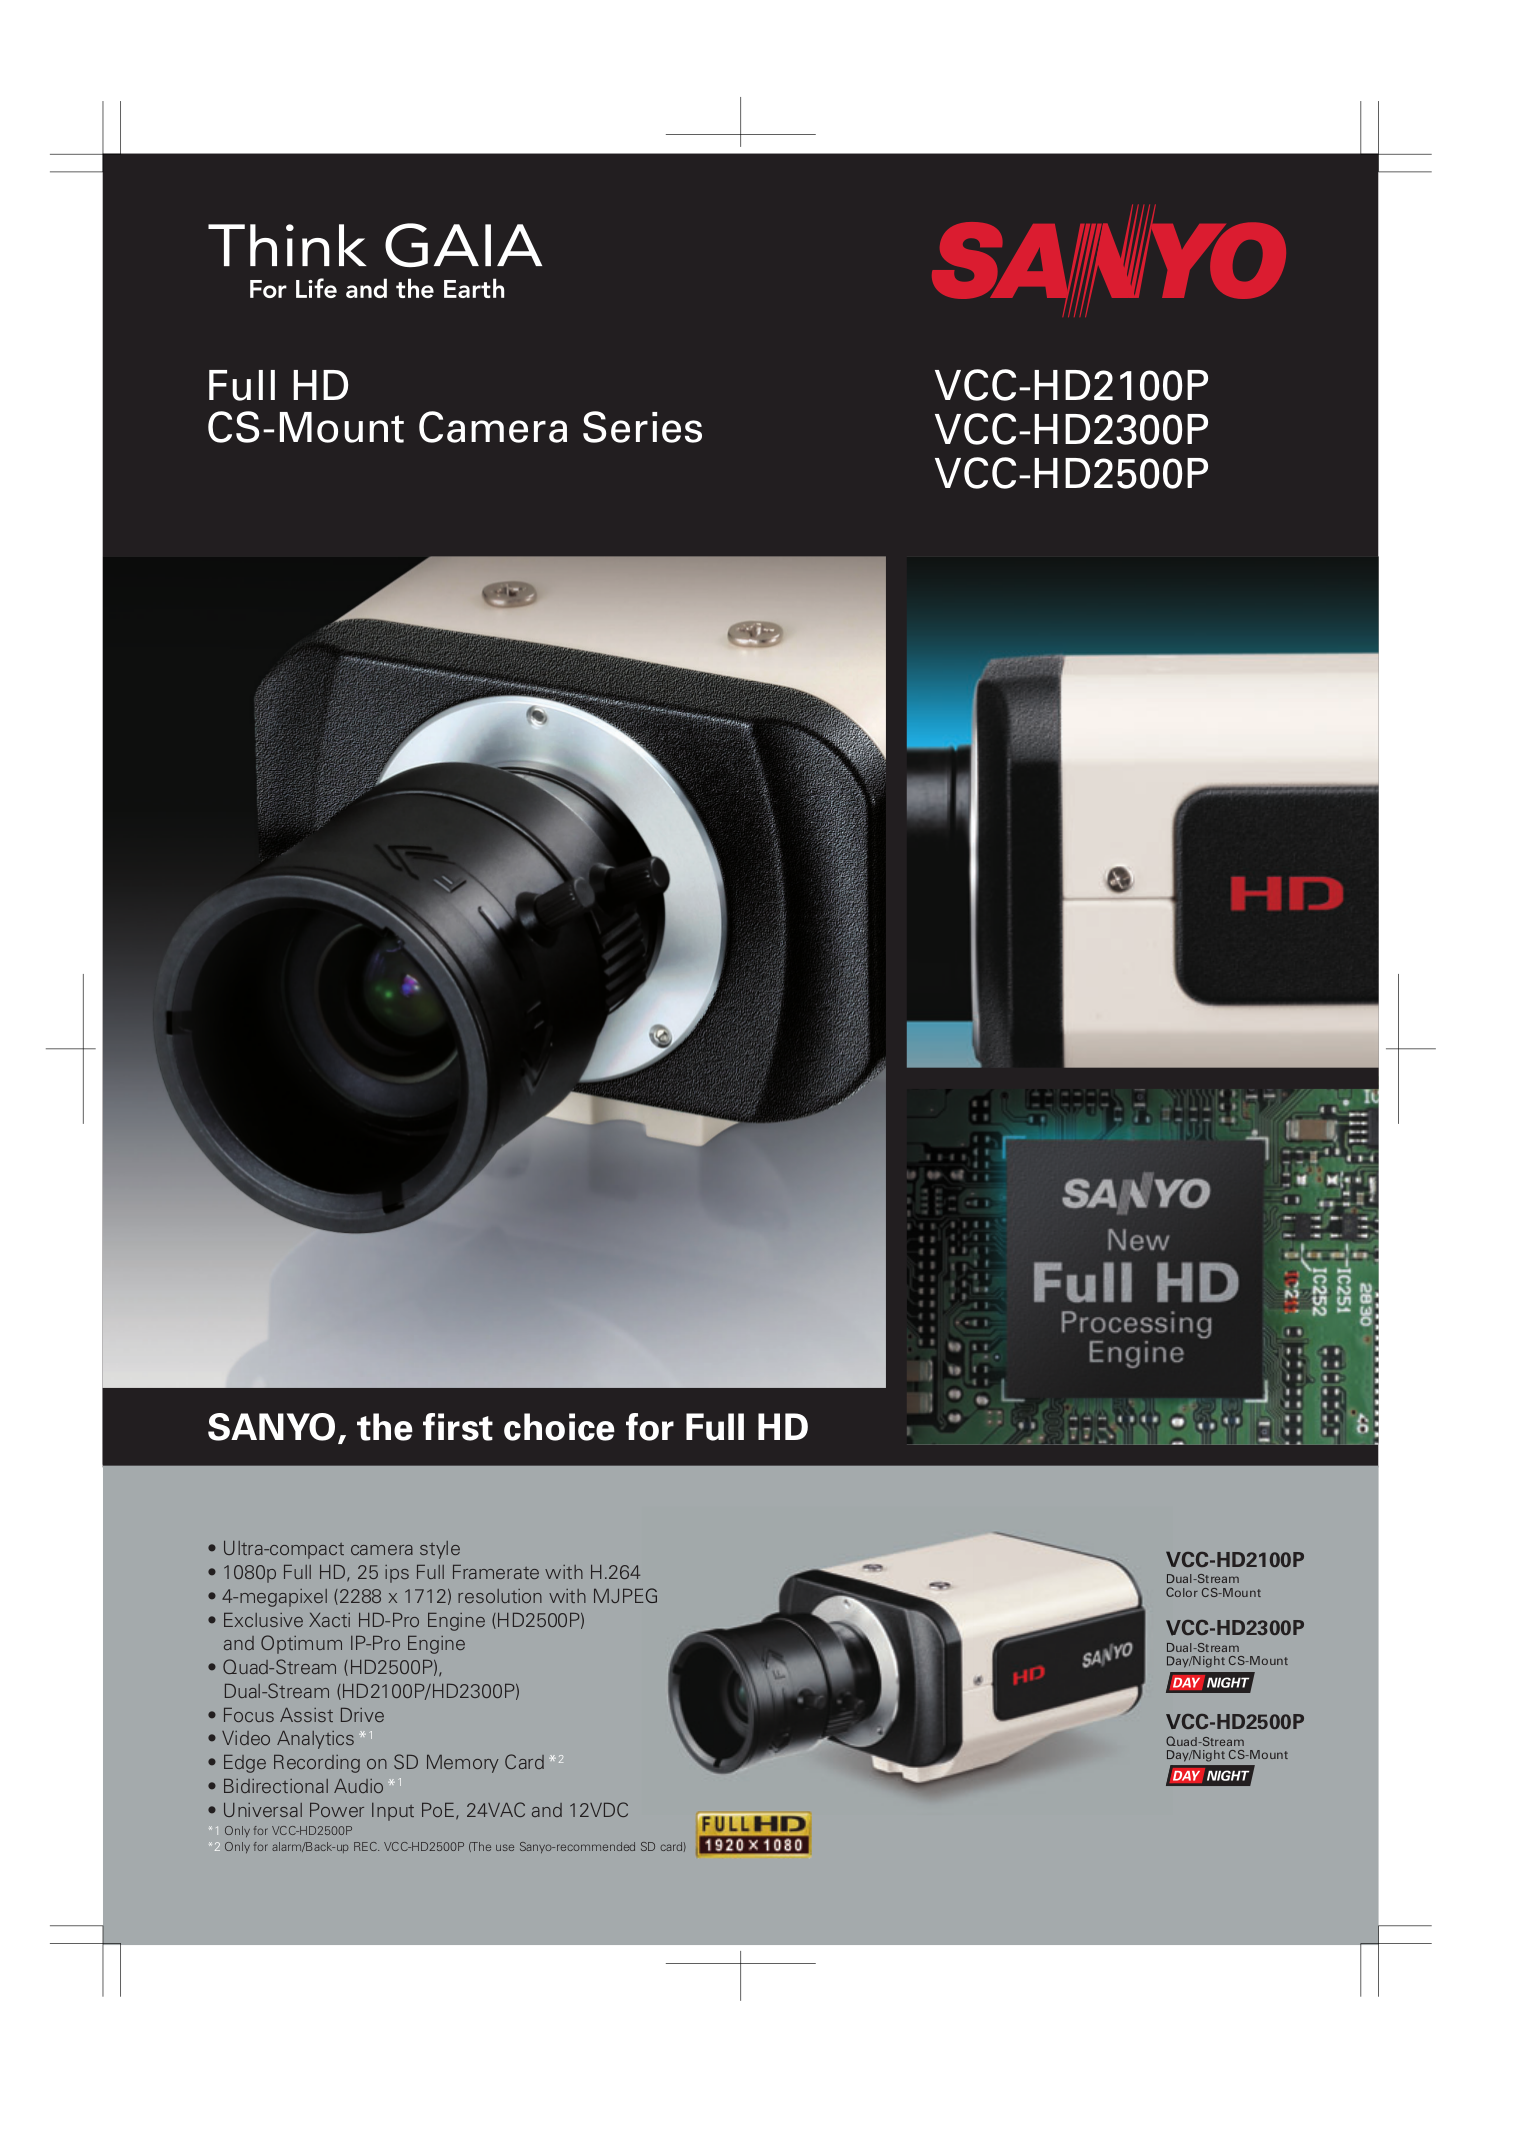 pdf for sanyo security camera vcc hd2500 manual ...